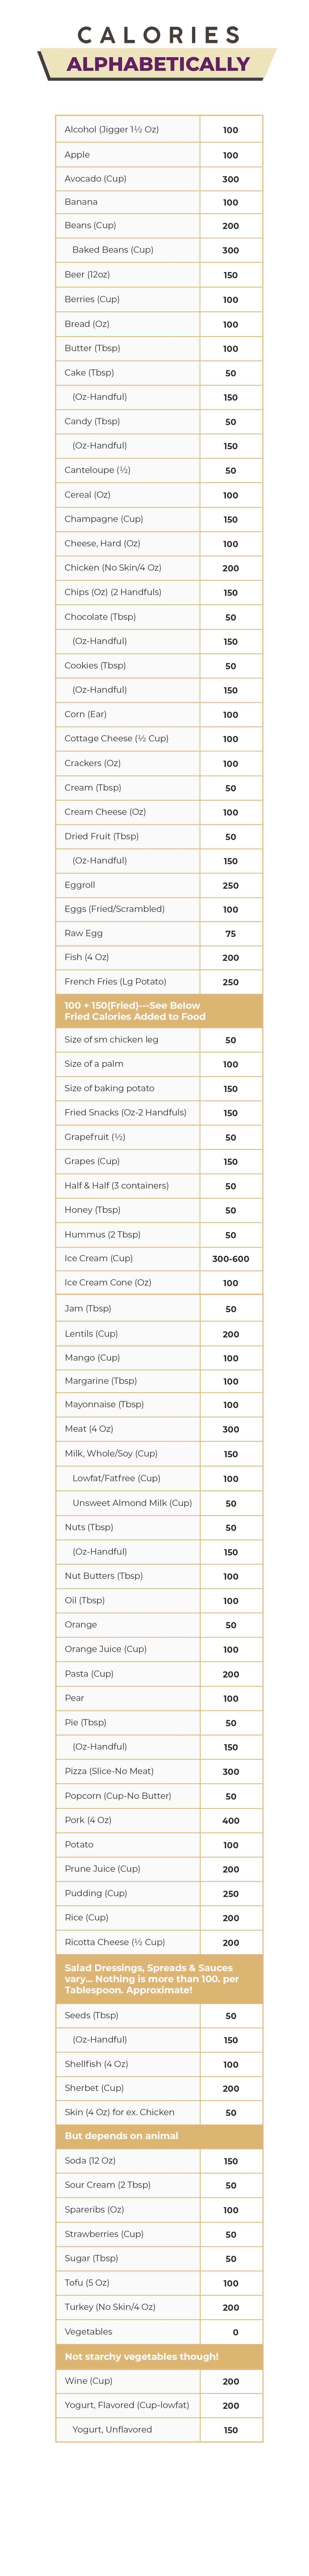 Calories reference chart